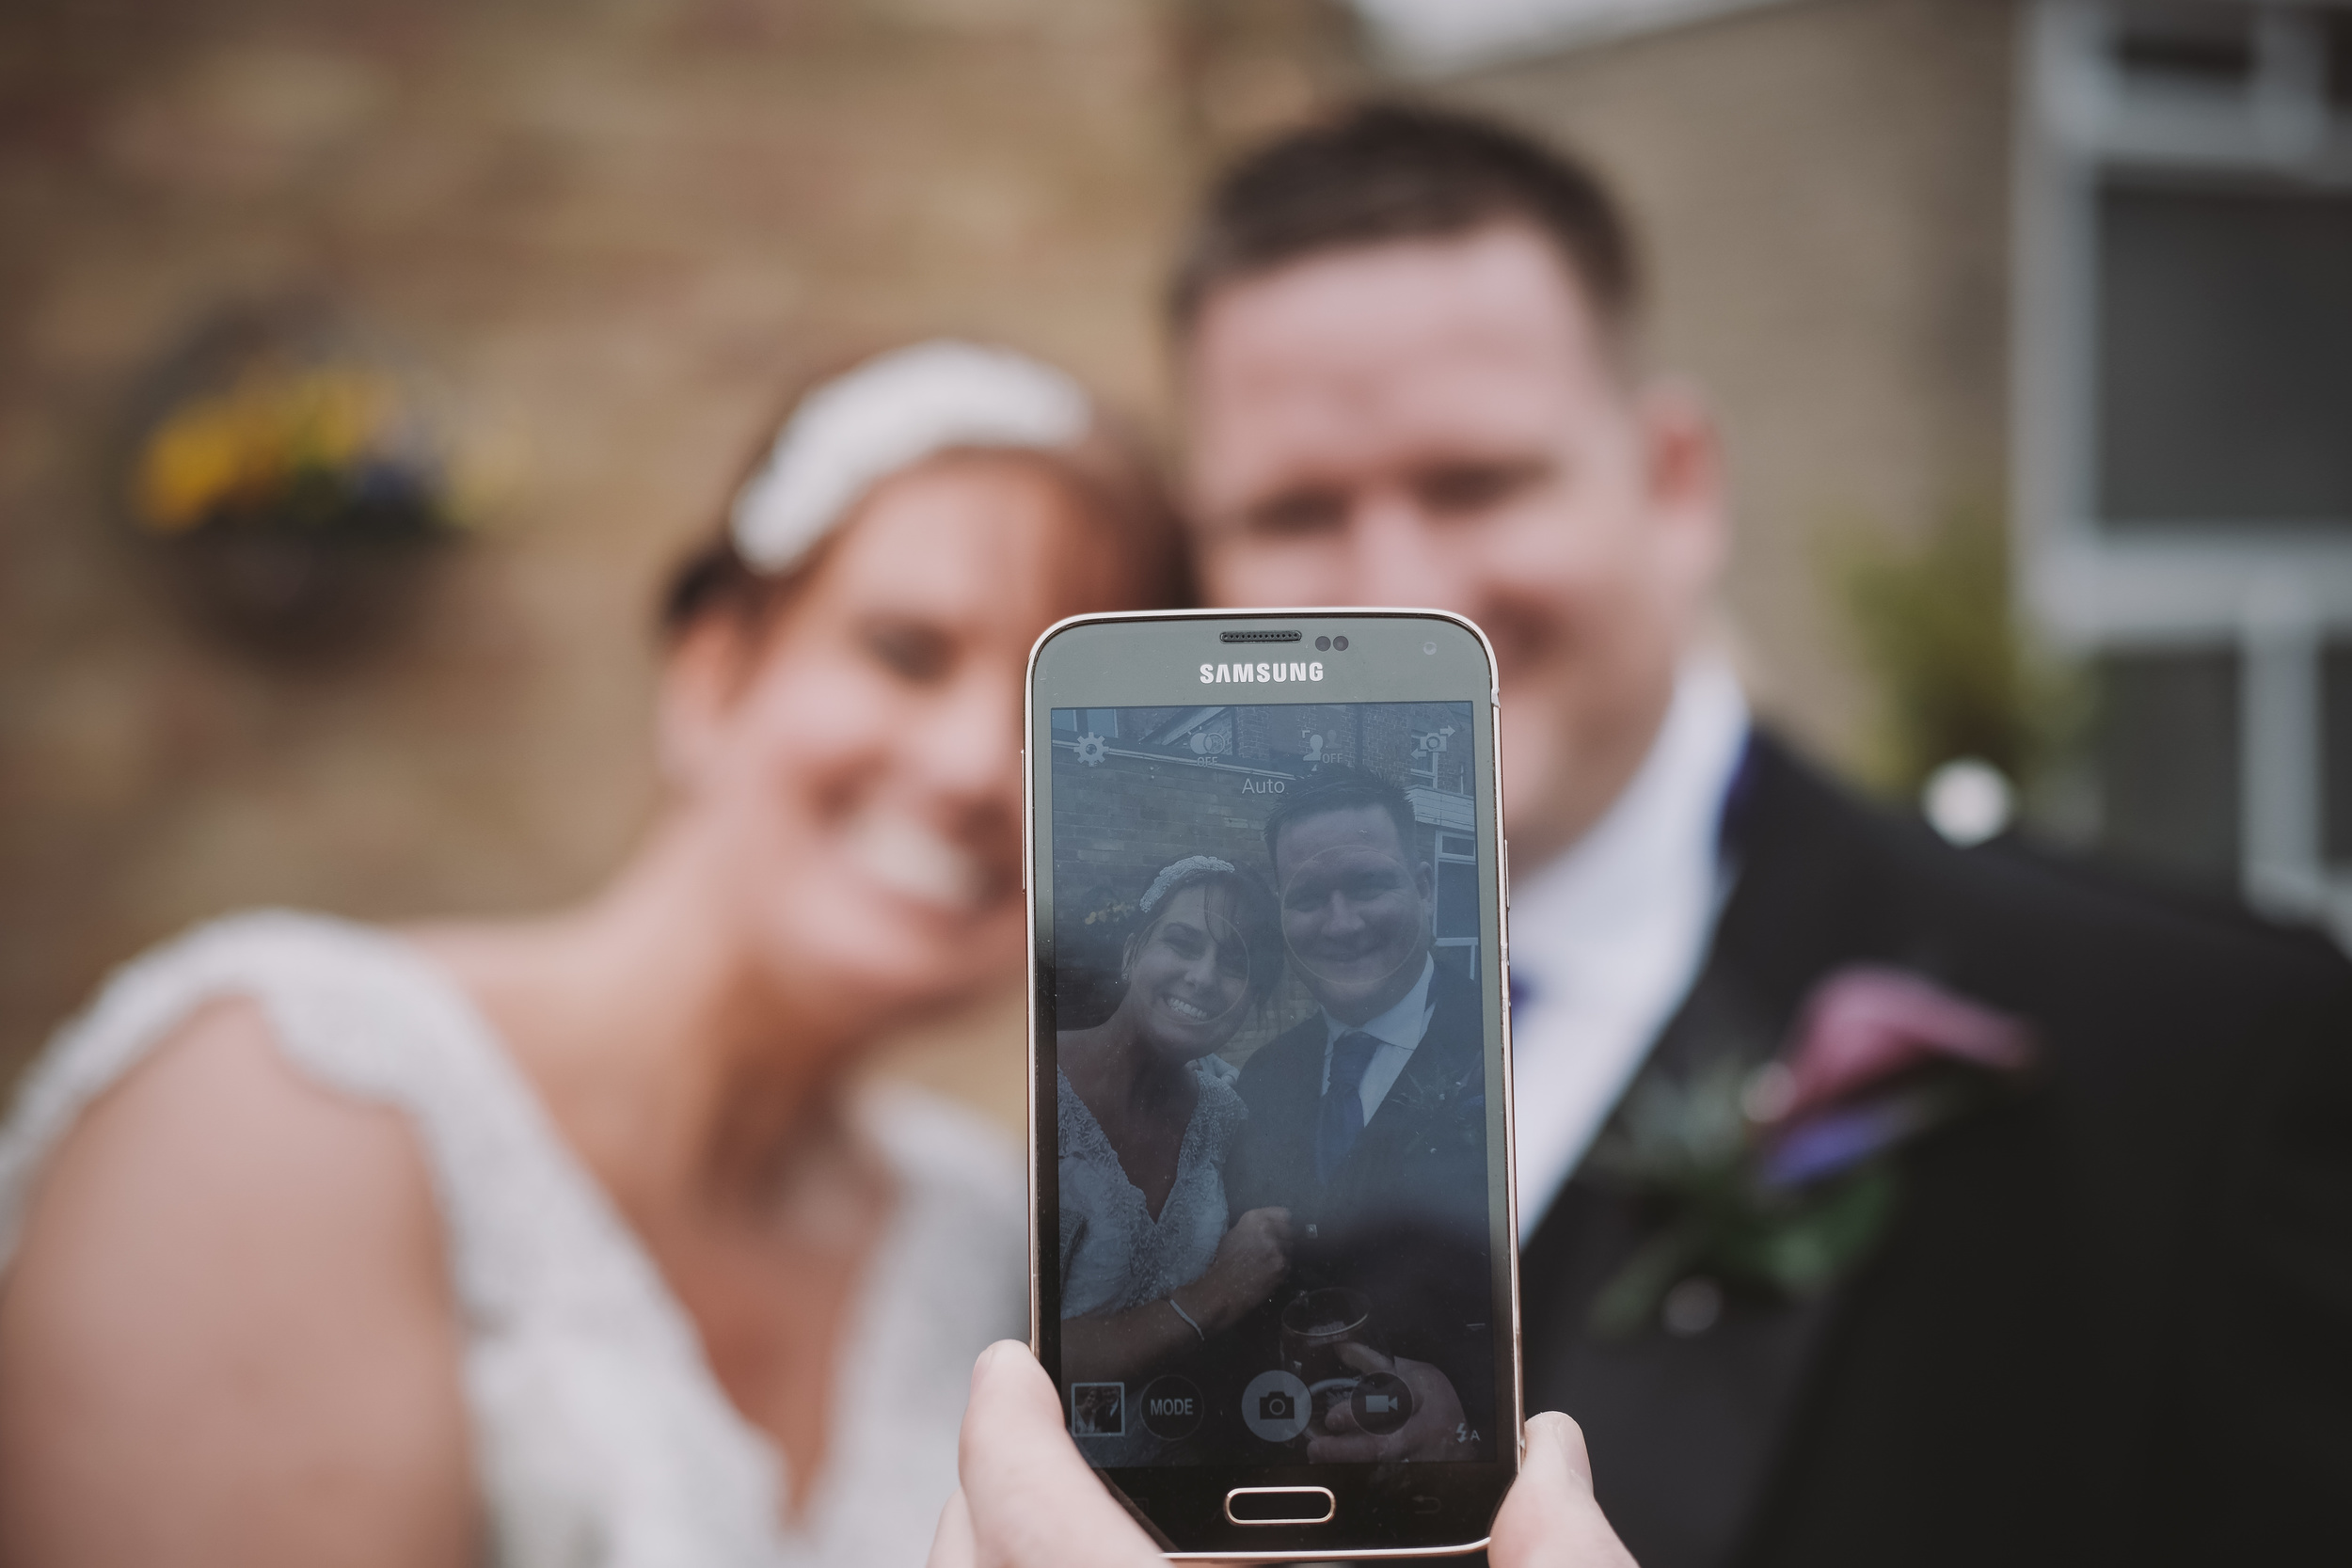 Newcastle Wedding Photographer // Bride and groom taking a selfie